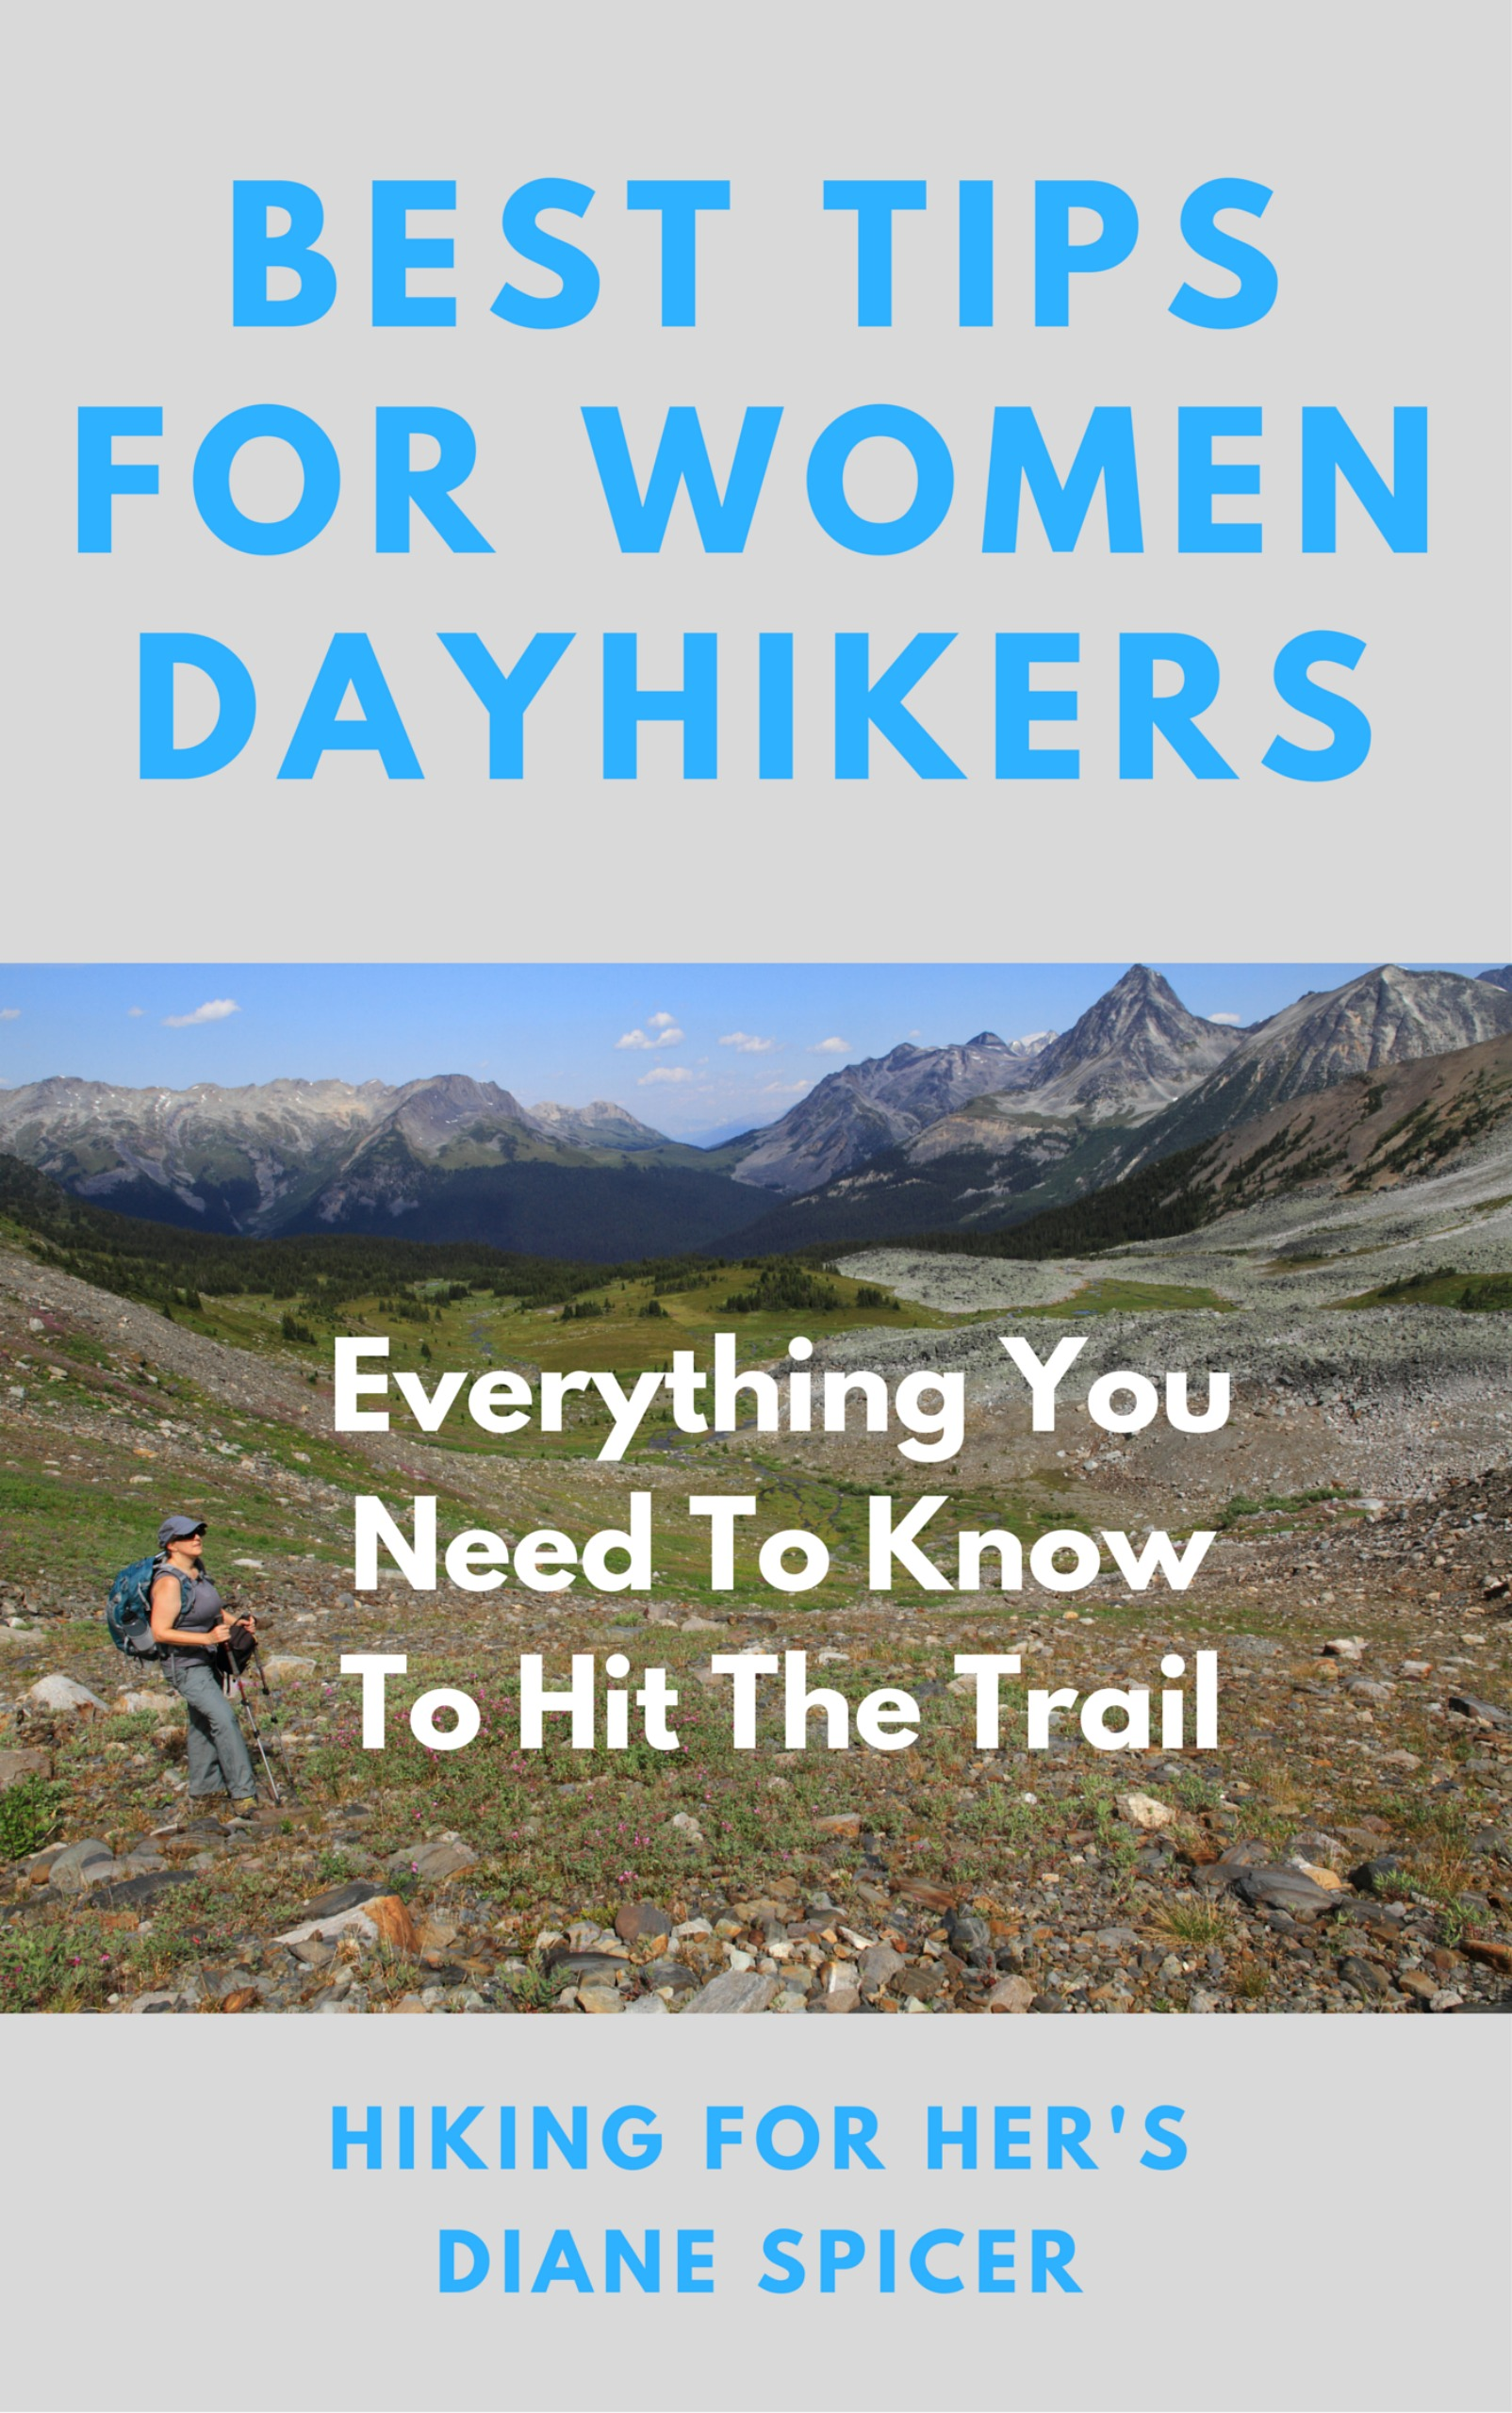 All of the best tips for hiking women are collected into one convenient, entertaining package. Perfect place to get your questions about day hiking answered!